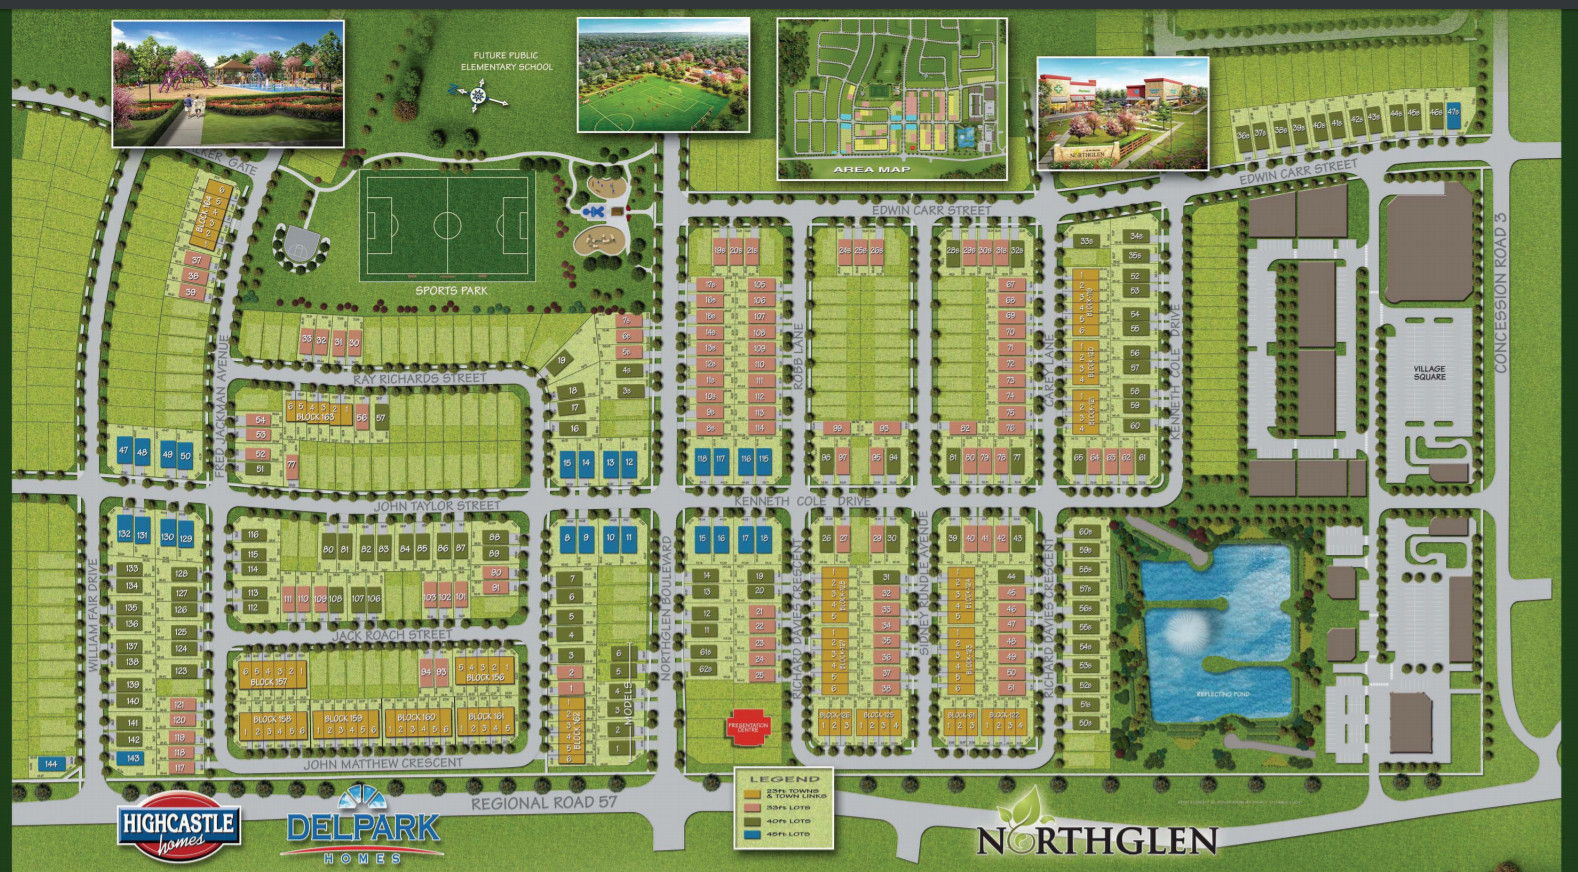 Site plan for Northglen in Clarington, Ontario